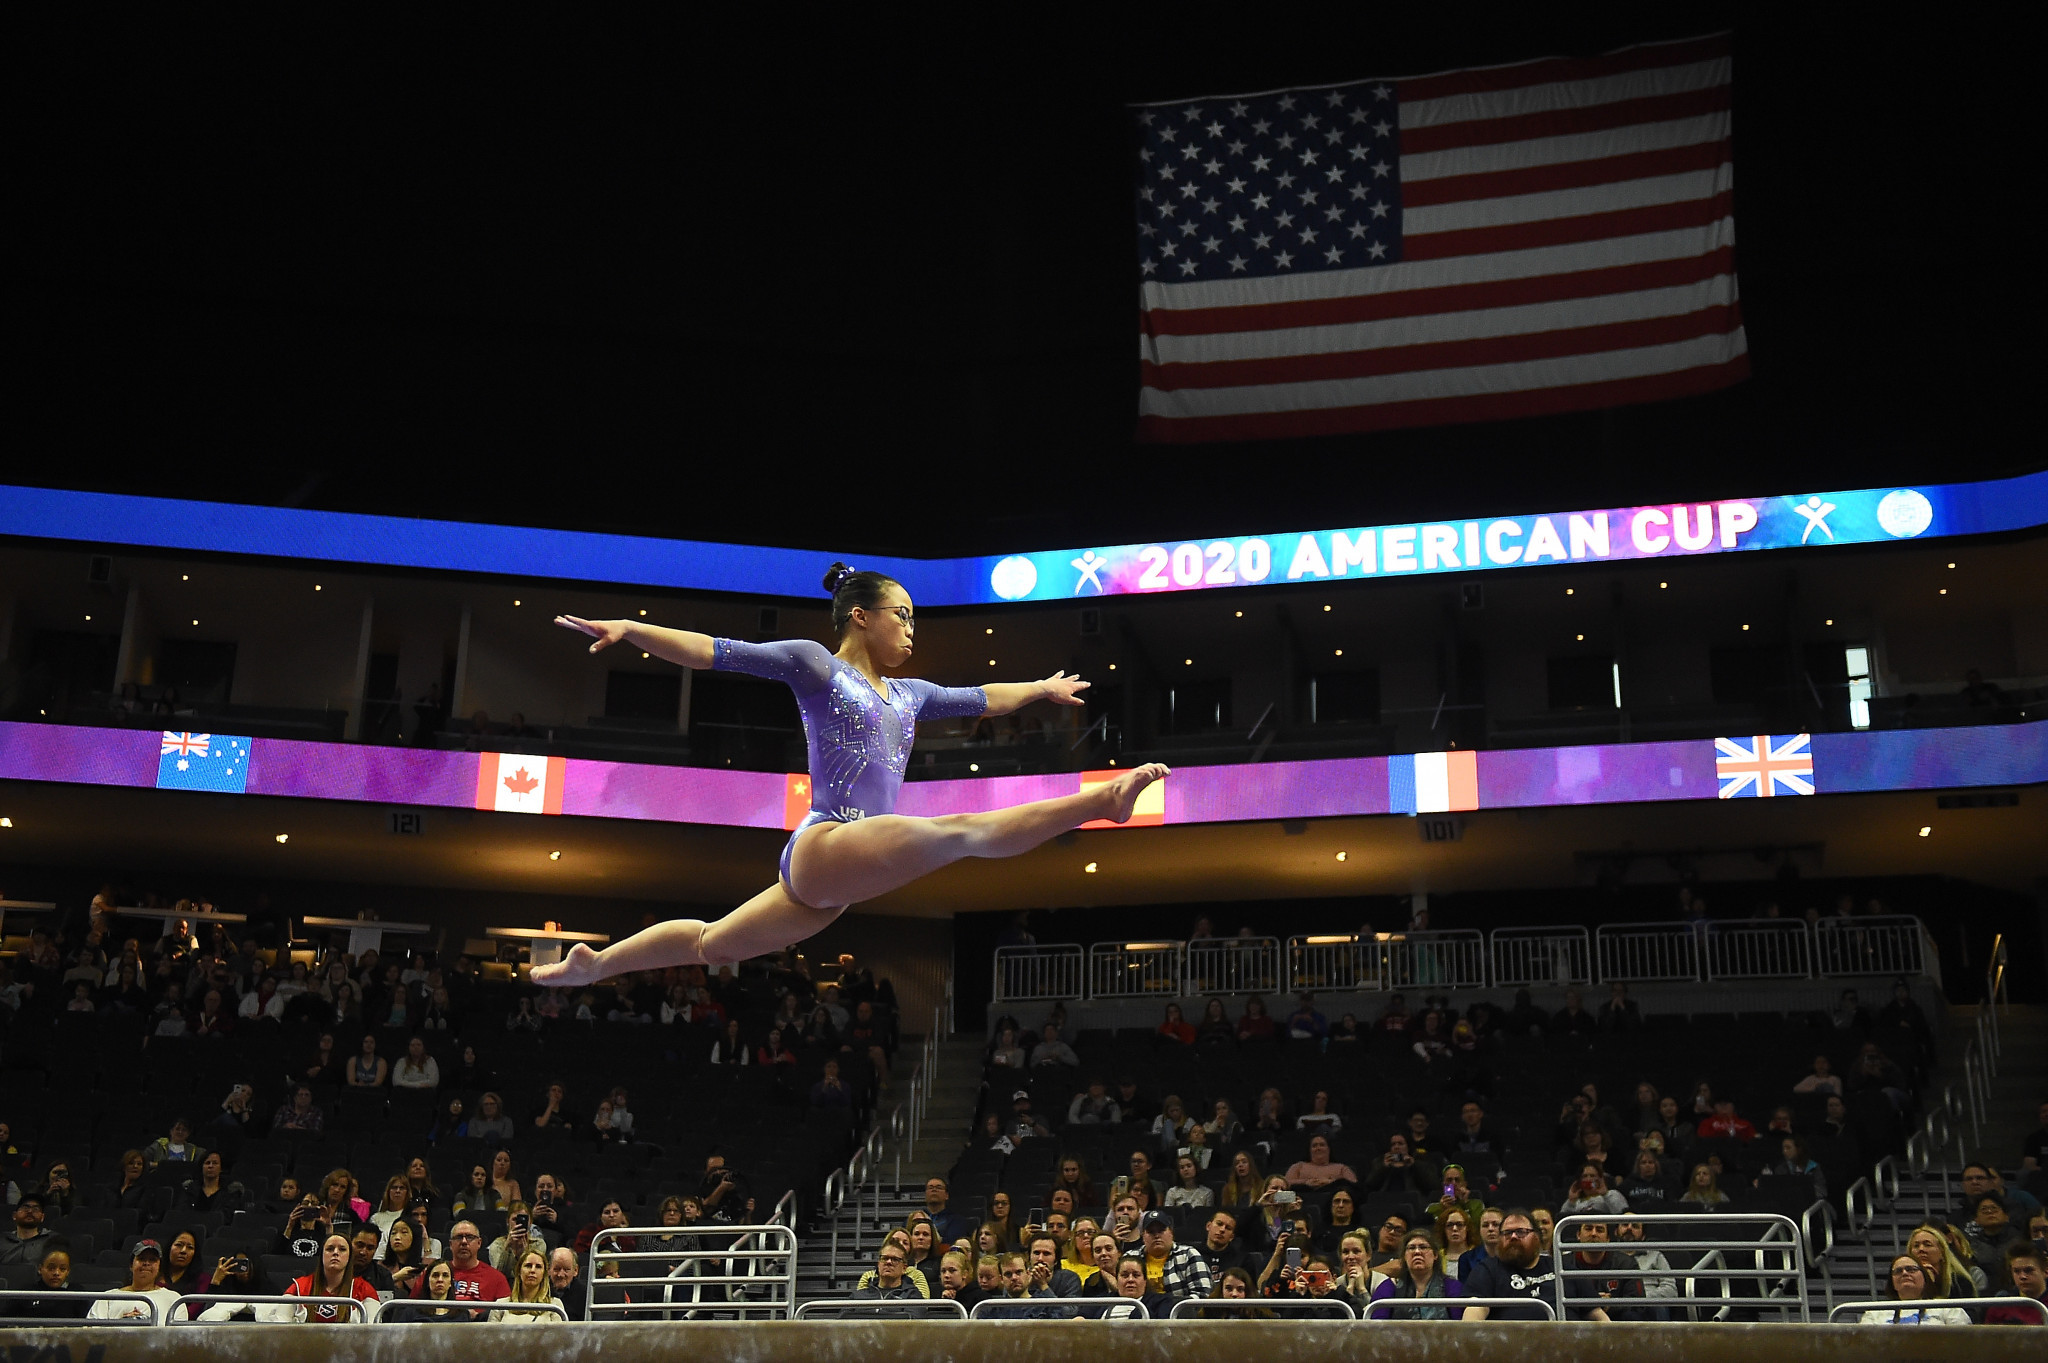 Hurd earns women's title at FIG World Cup event in Milwaukee